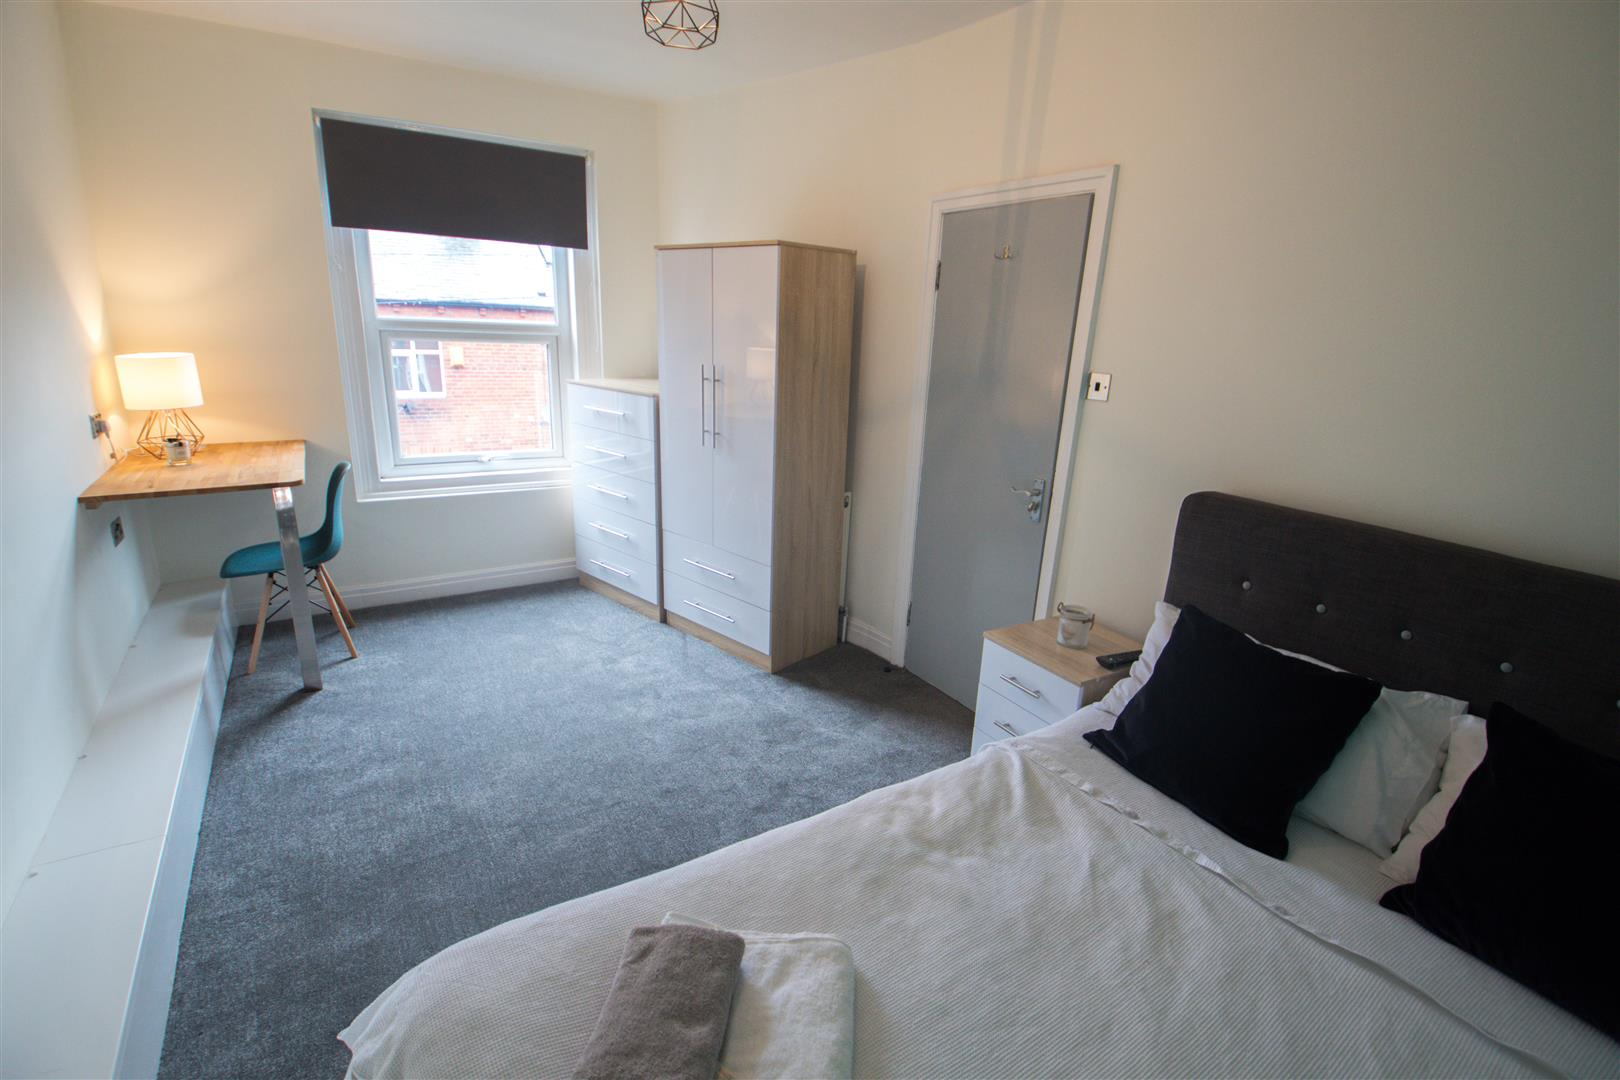 Room 3, Headingley Avenue, Leeds LS6 3ER Image